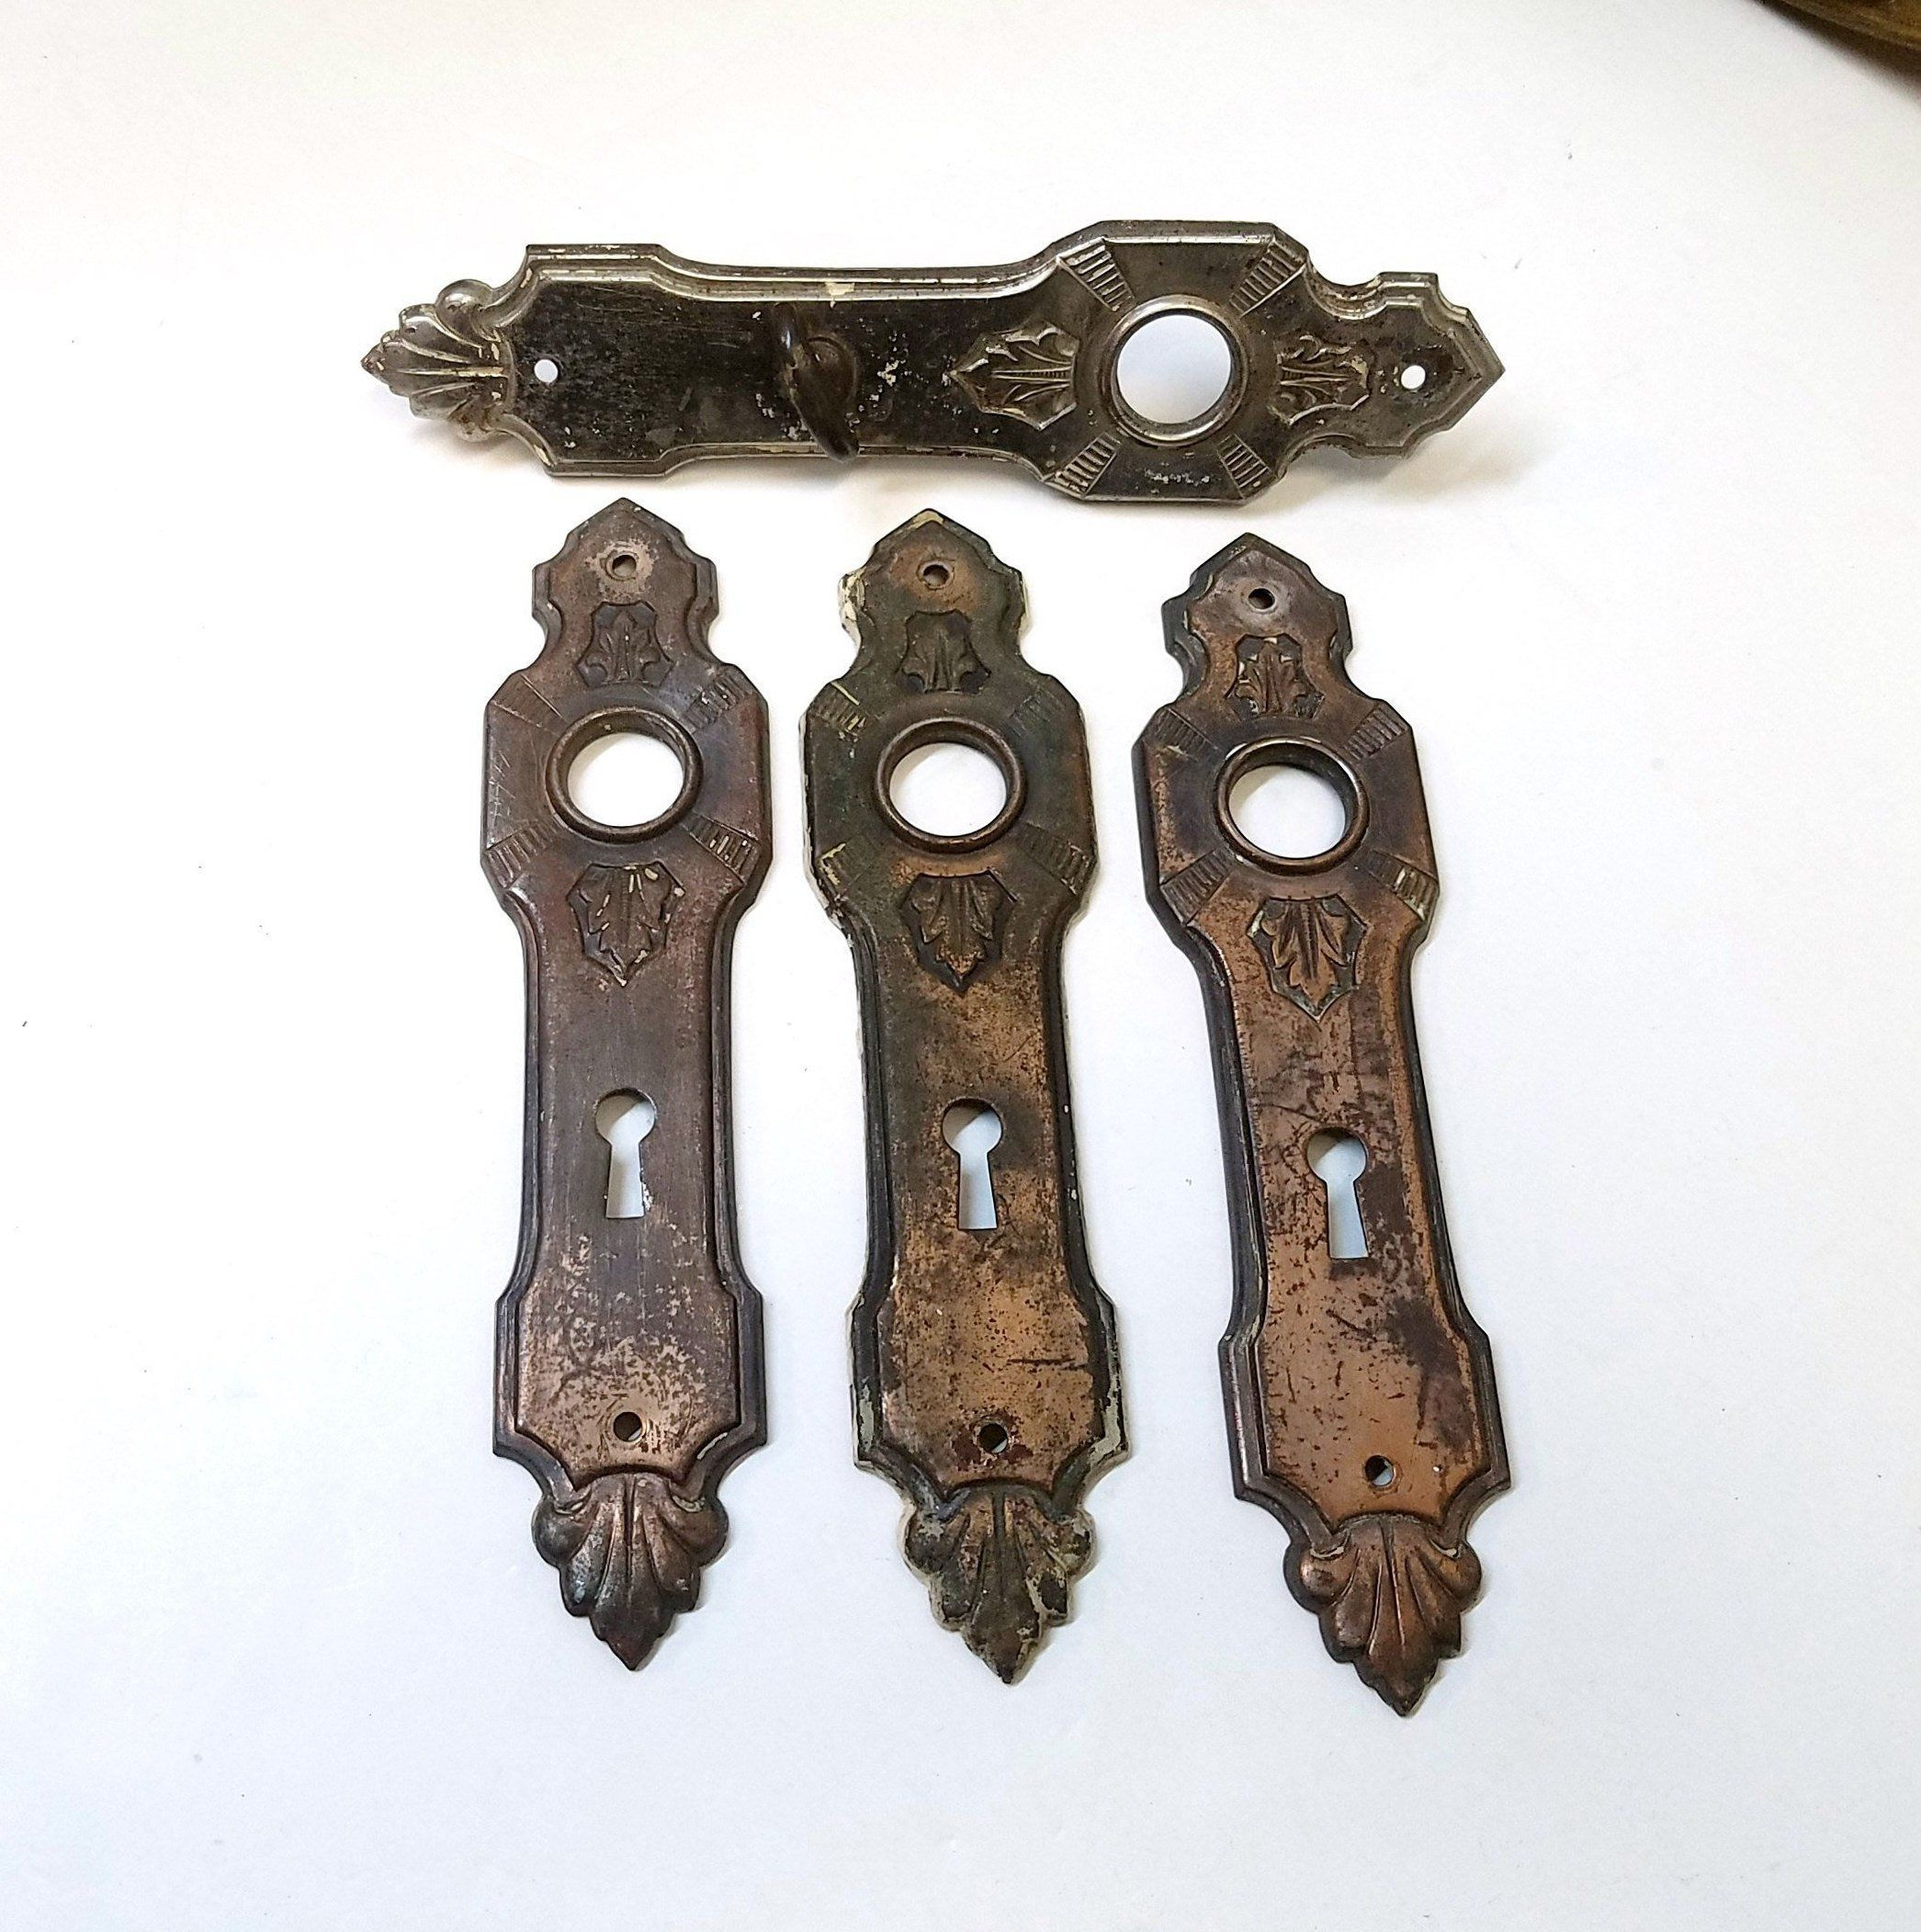 Steampunk Keyhole Wall Decor with Knob Rustic Chic Shabby Antique White Set of 3